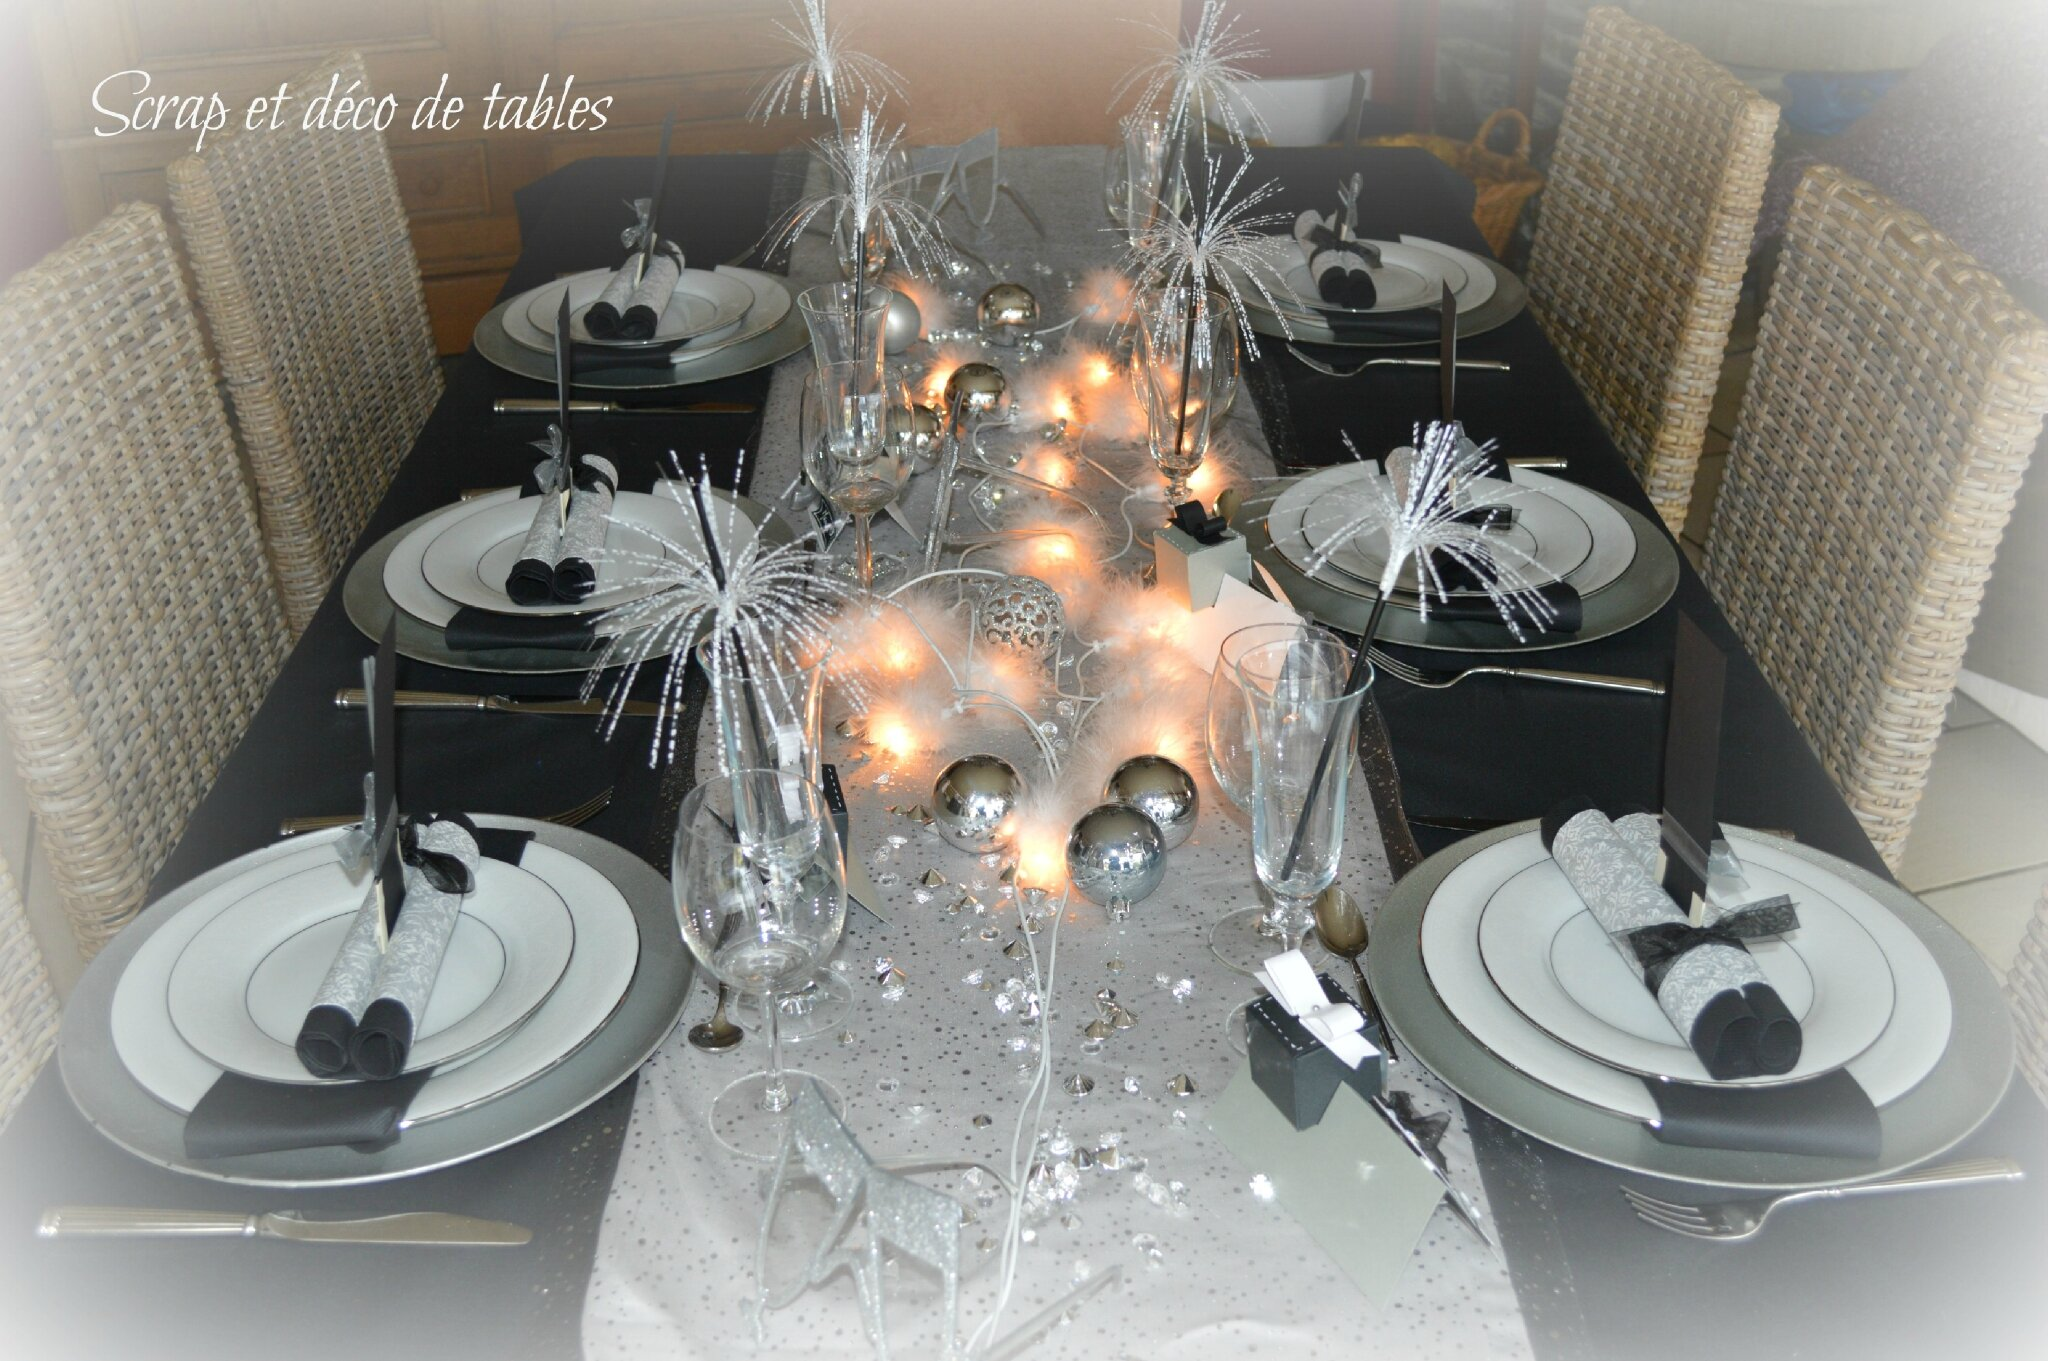 Deco de table nouvel an 2015 scrap et d co de tables - Deco de table jour de l an ...